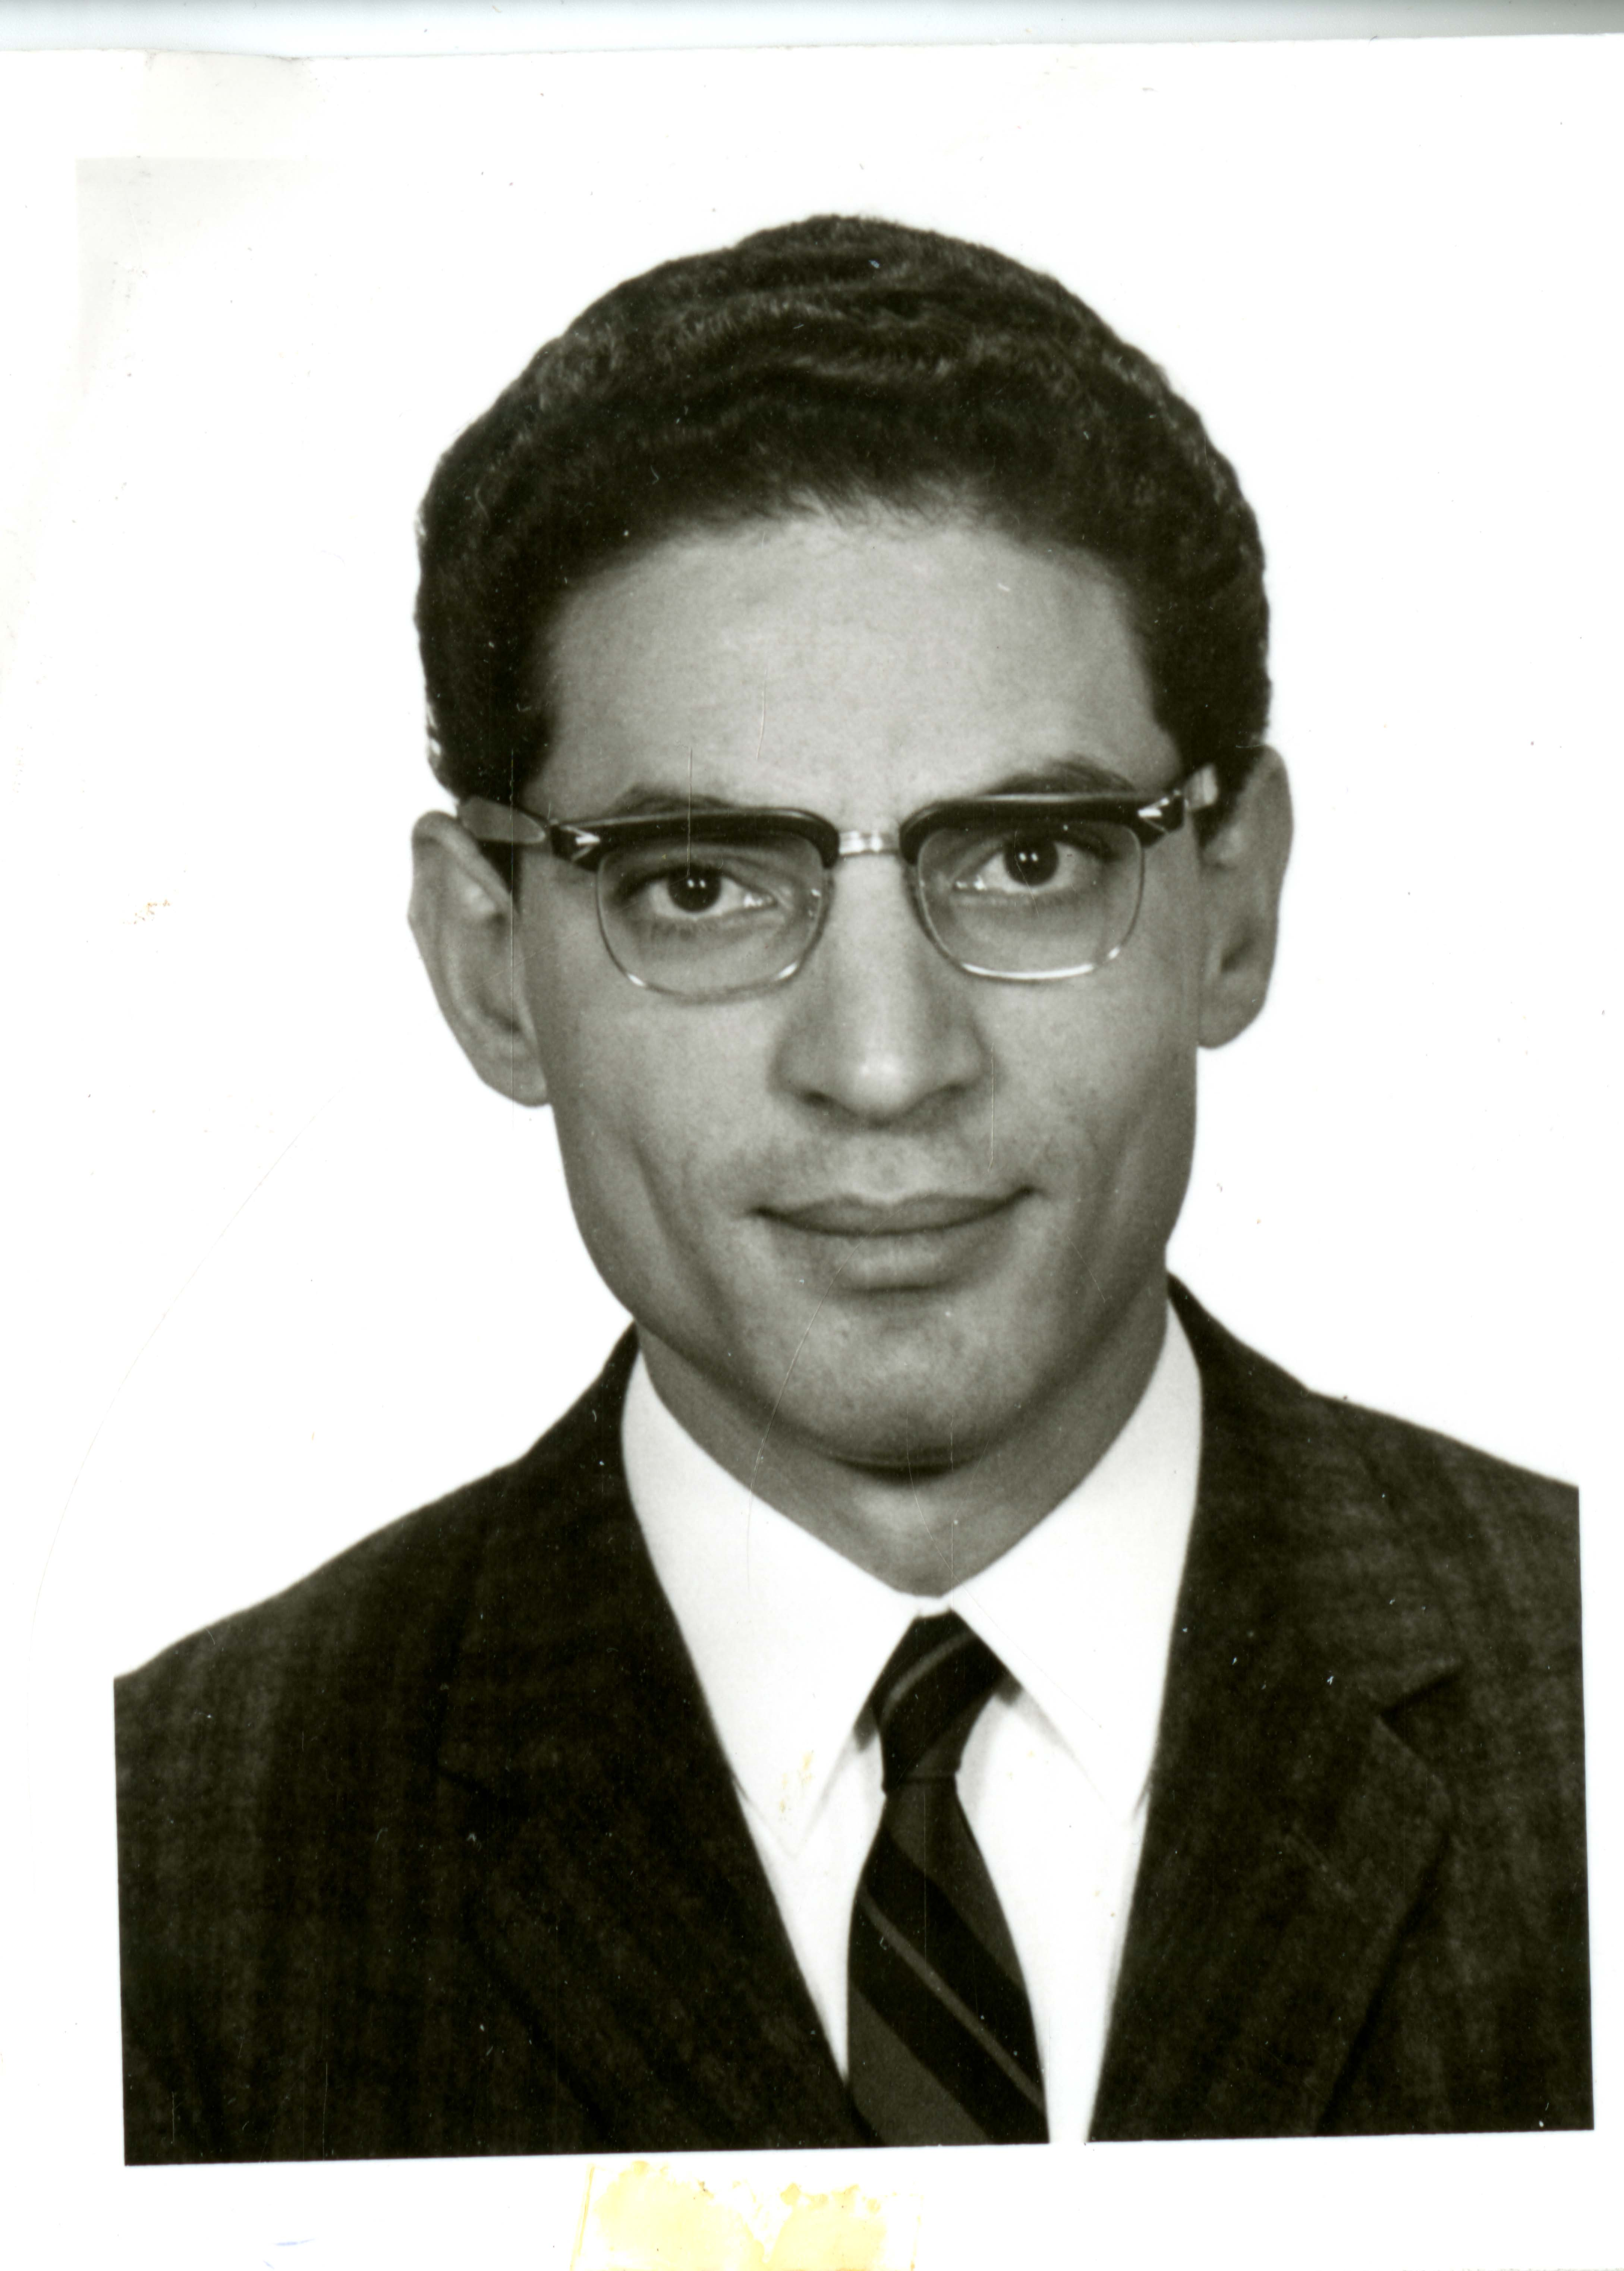 Portrait photograph of Dr. Farouk El Baz.